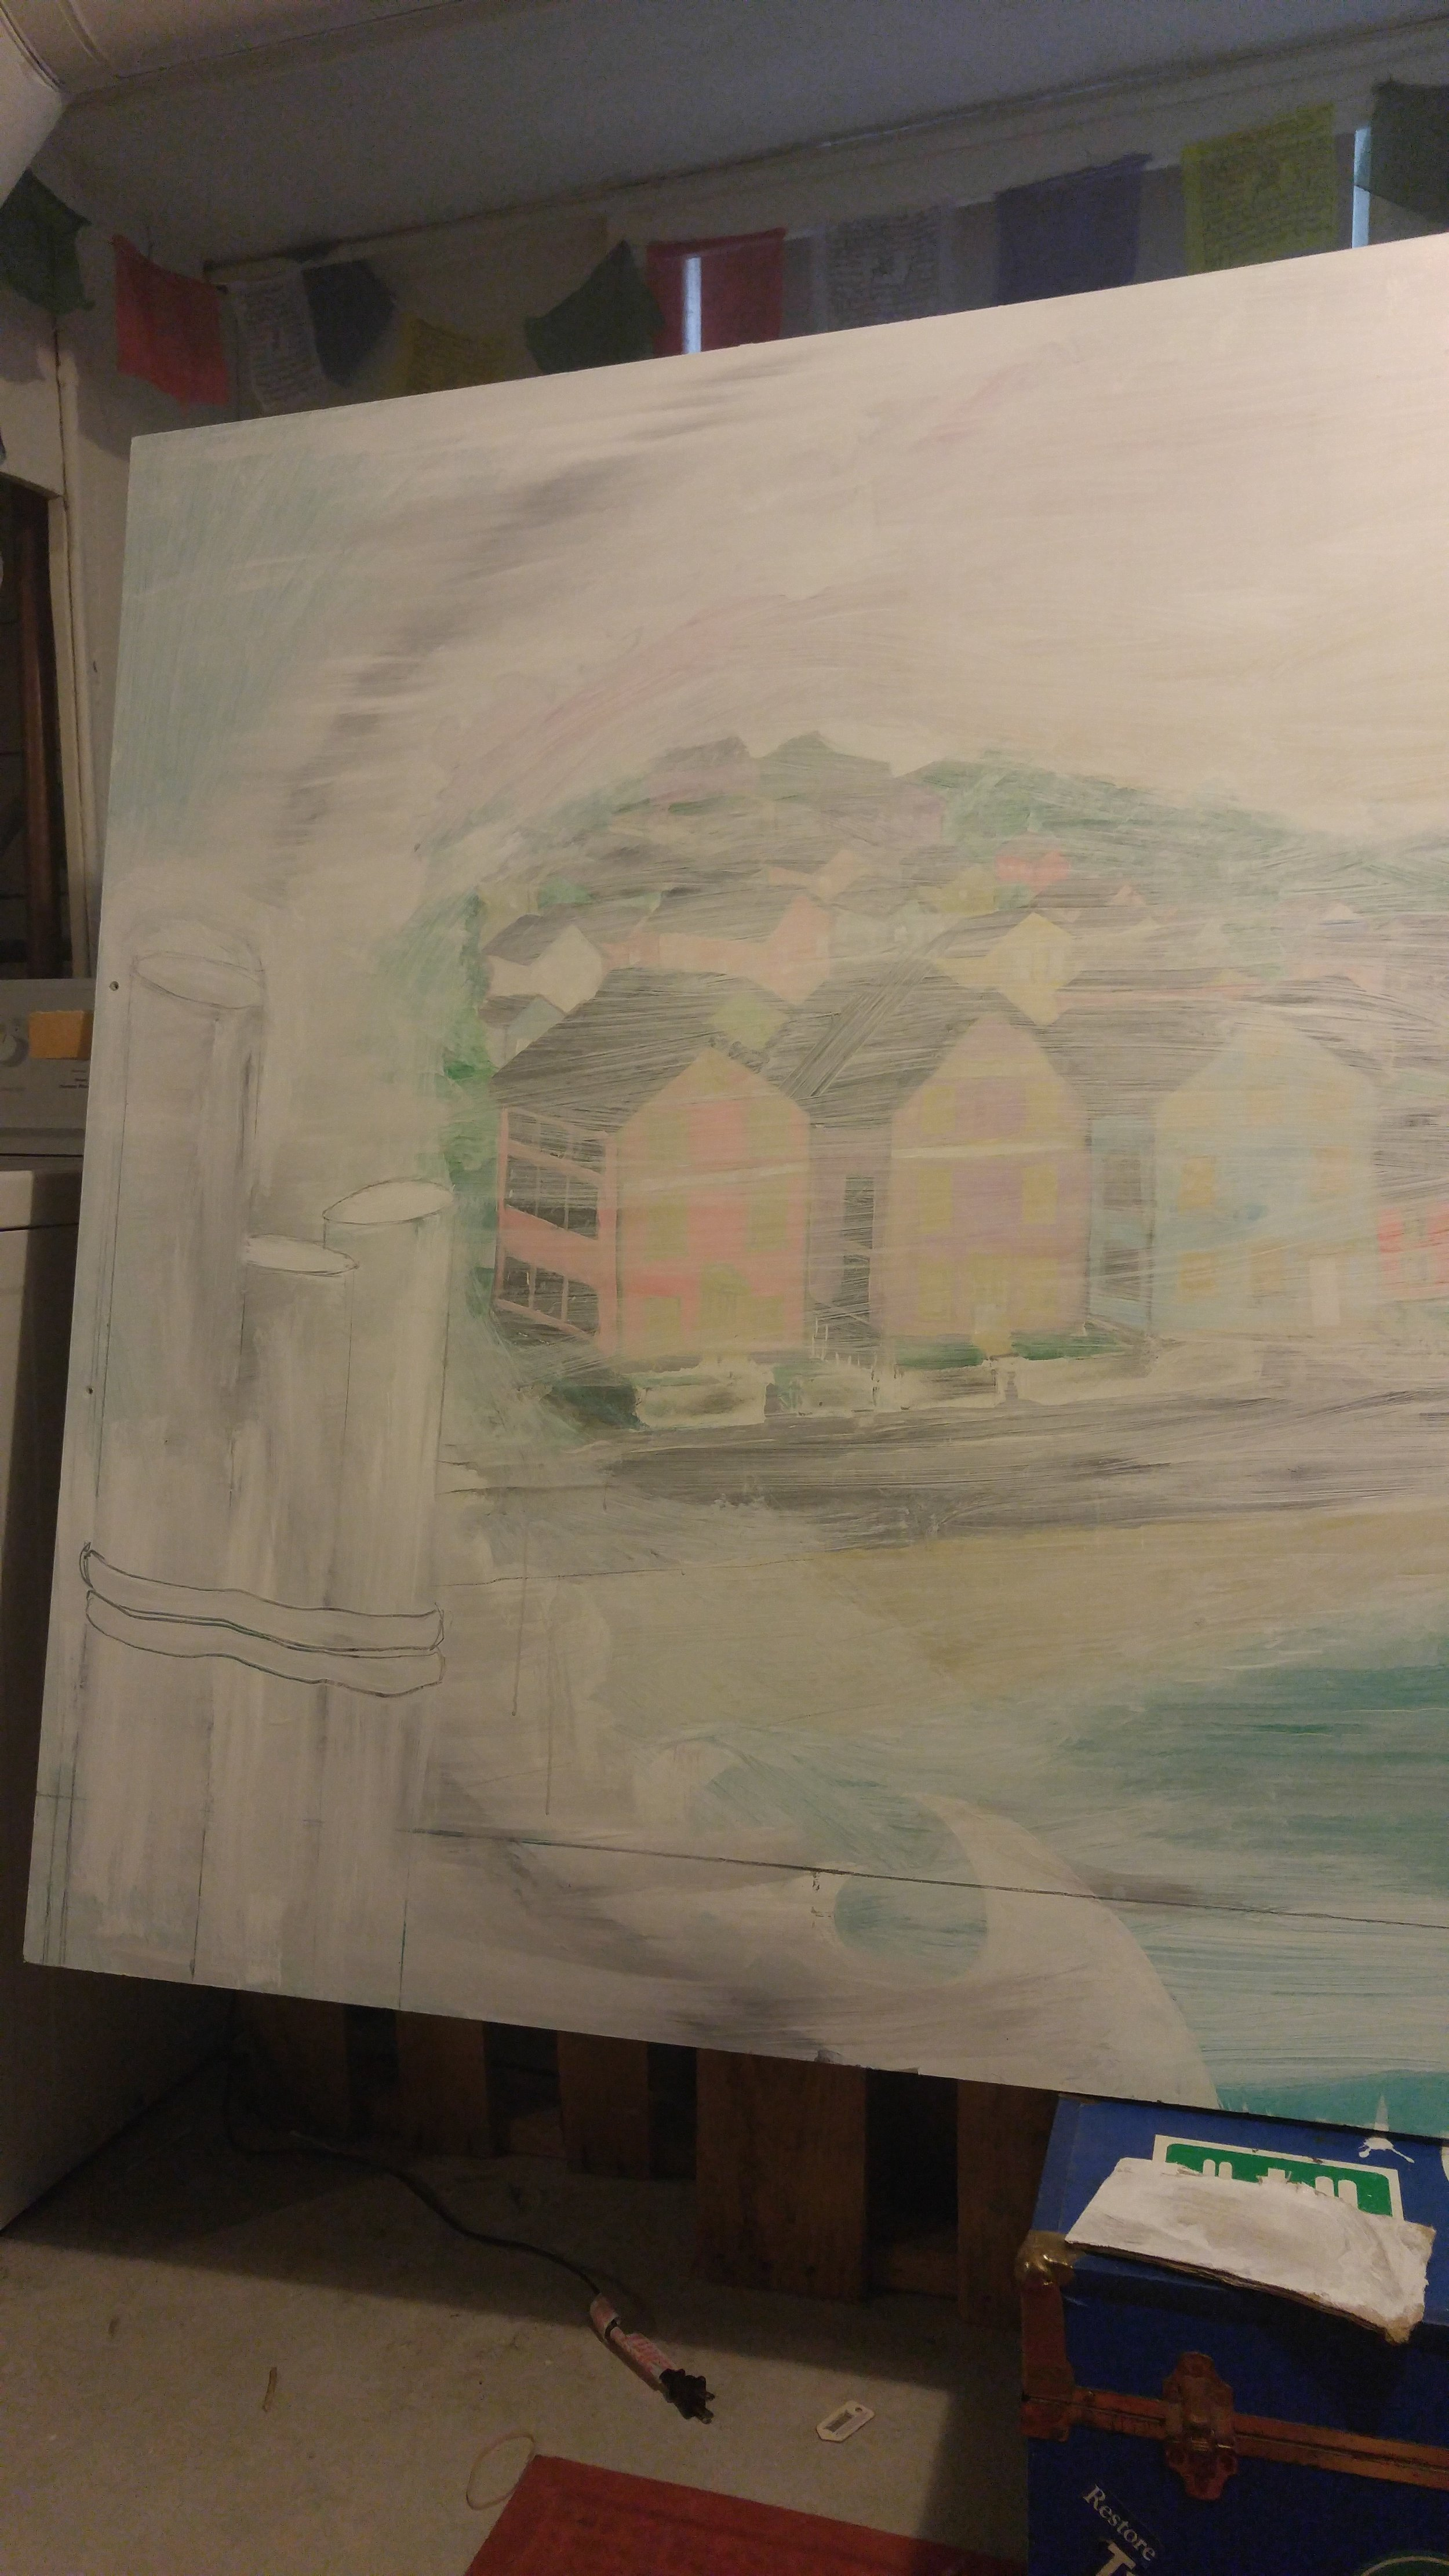 After sanding and cleaning I applied some primer to the whole mural and began making adjustments using graphite